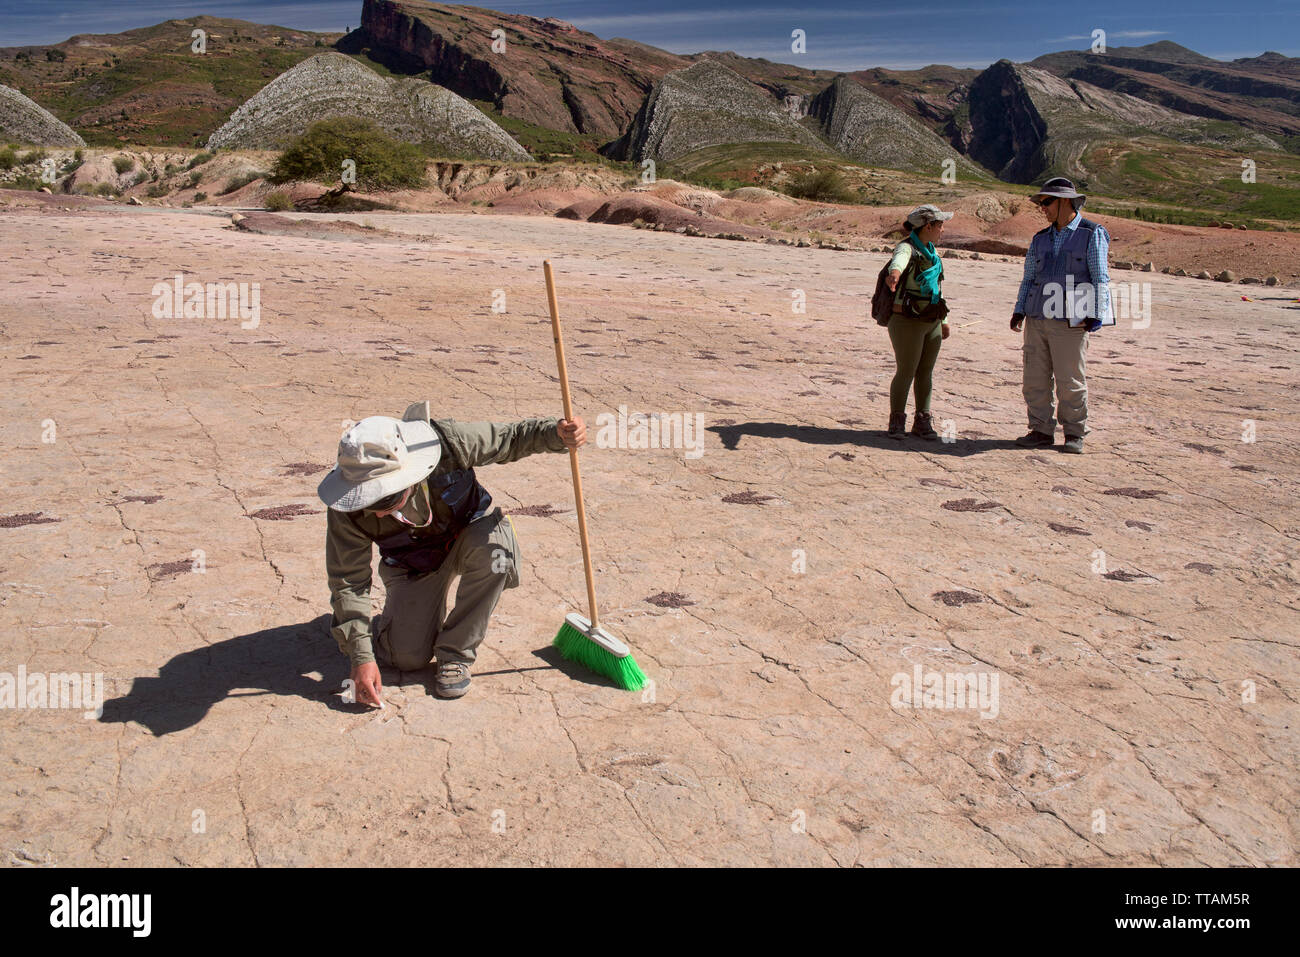 Paleontologist studying dinosaur footprints in Torotoro National Park, Torotoro, Bolivia Stock Photo